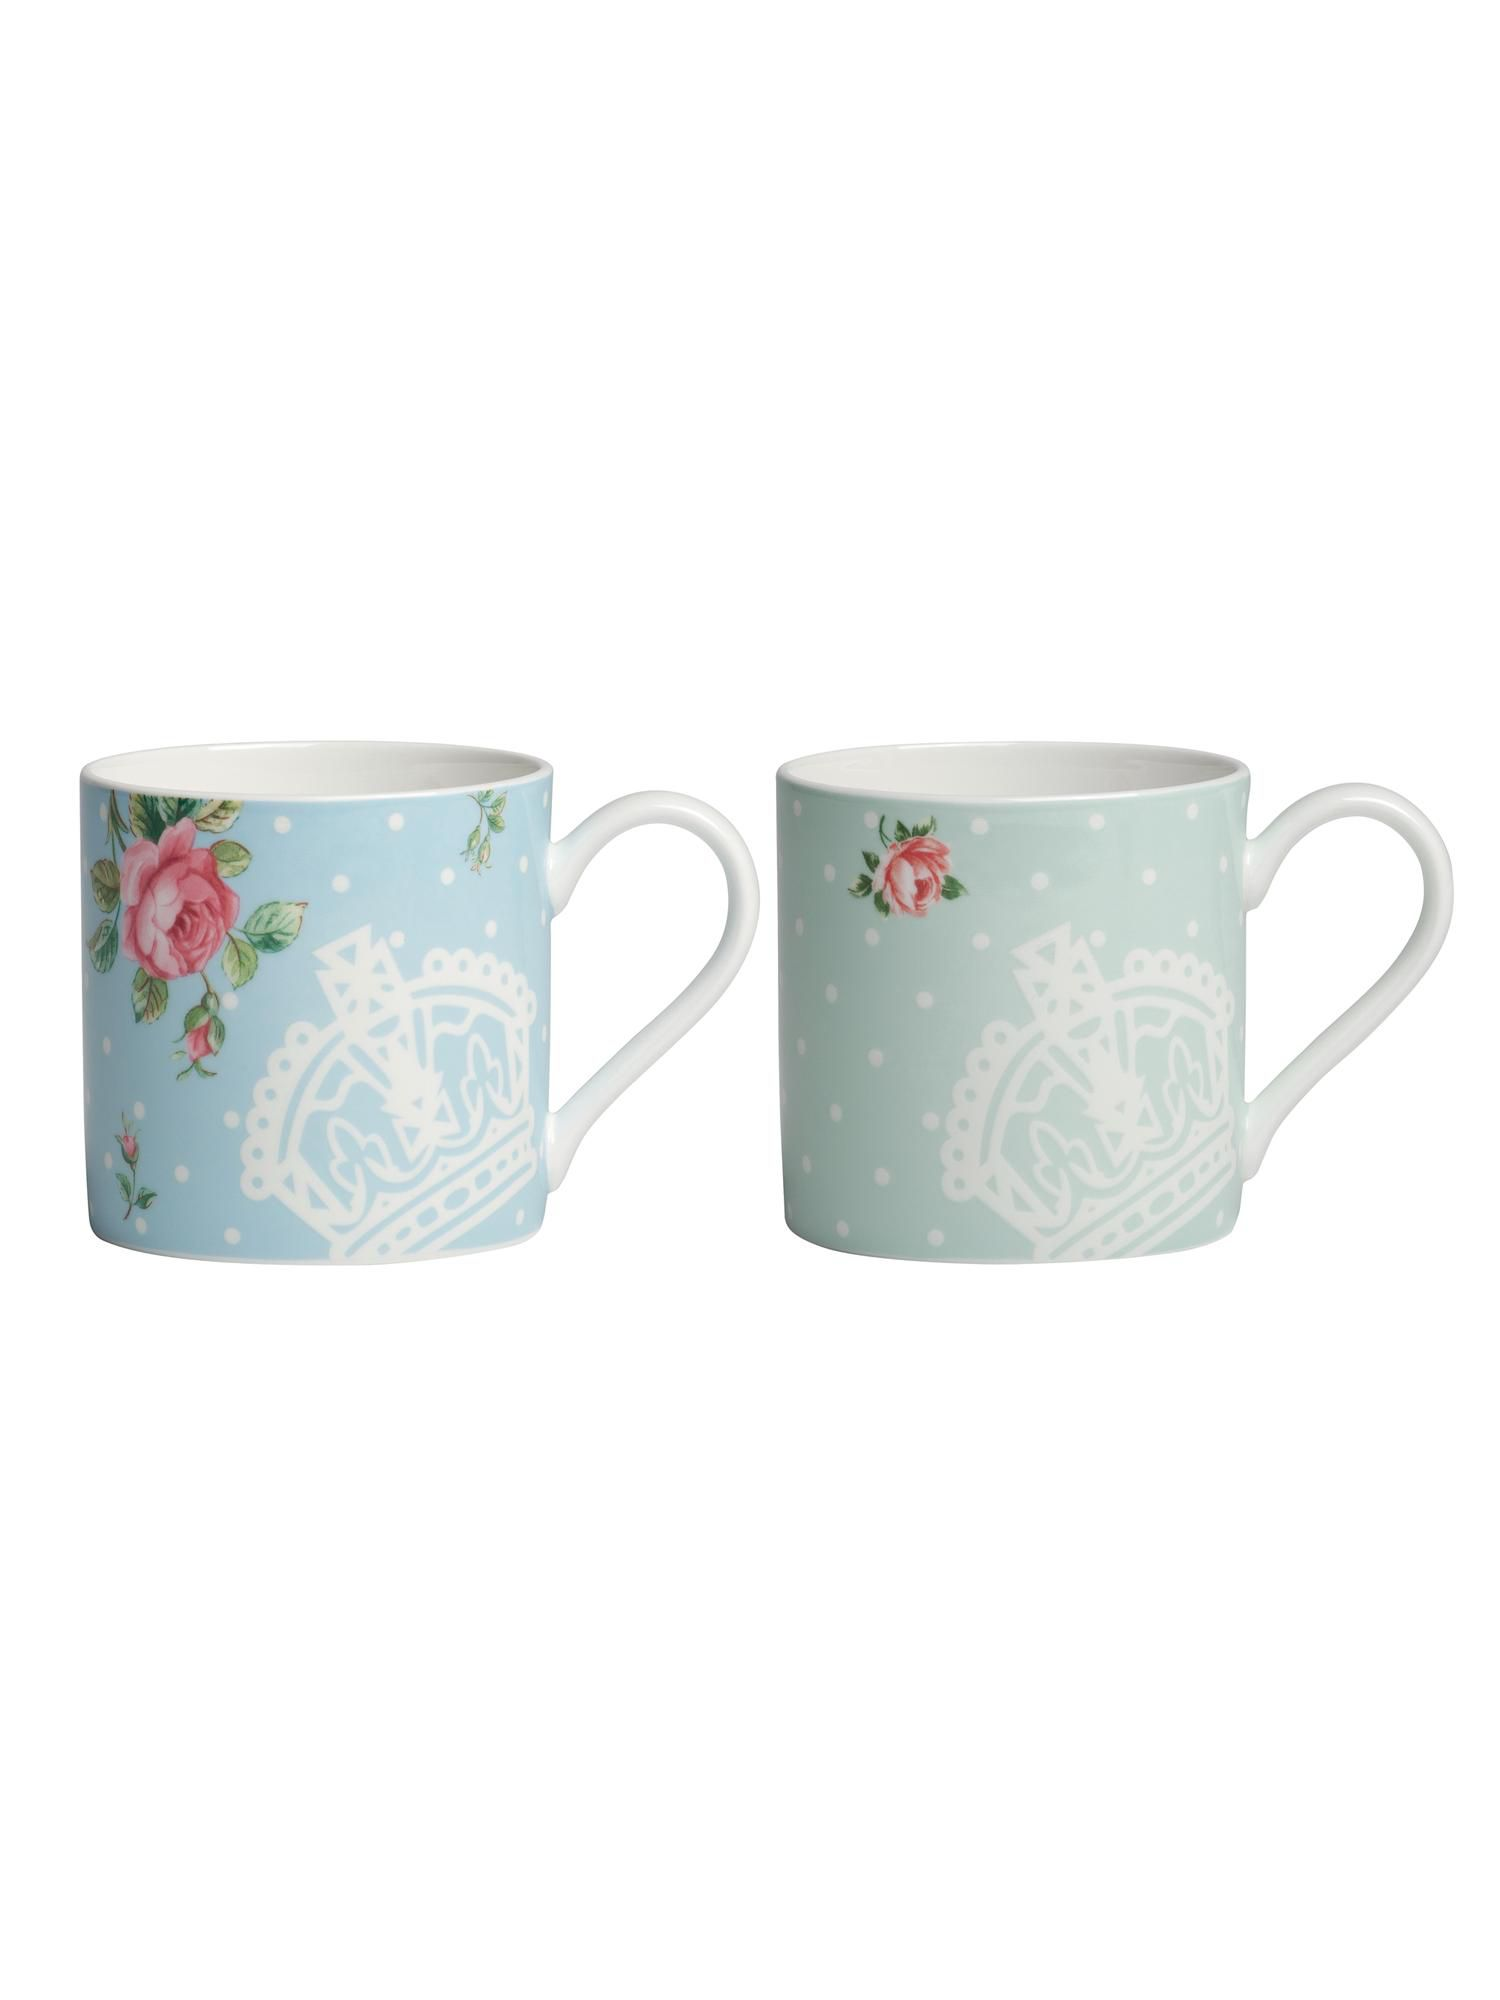 Polka rose set of 2 mugs